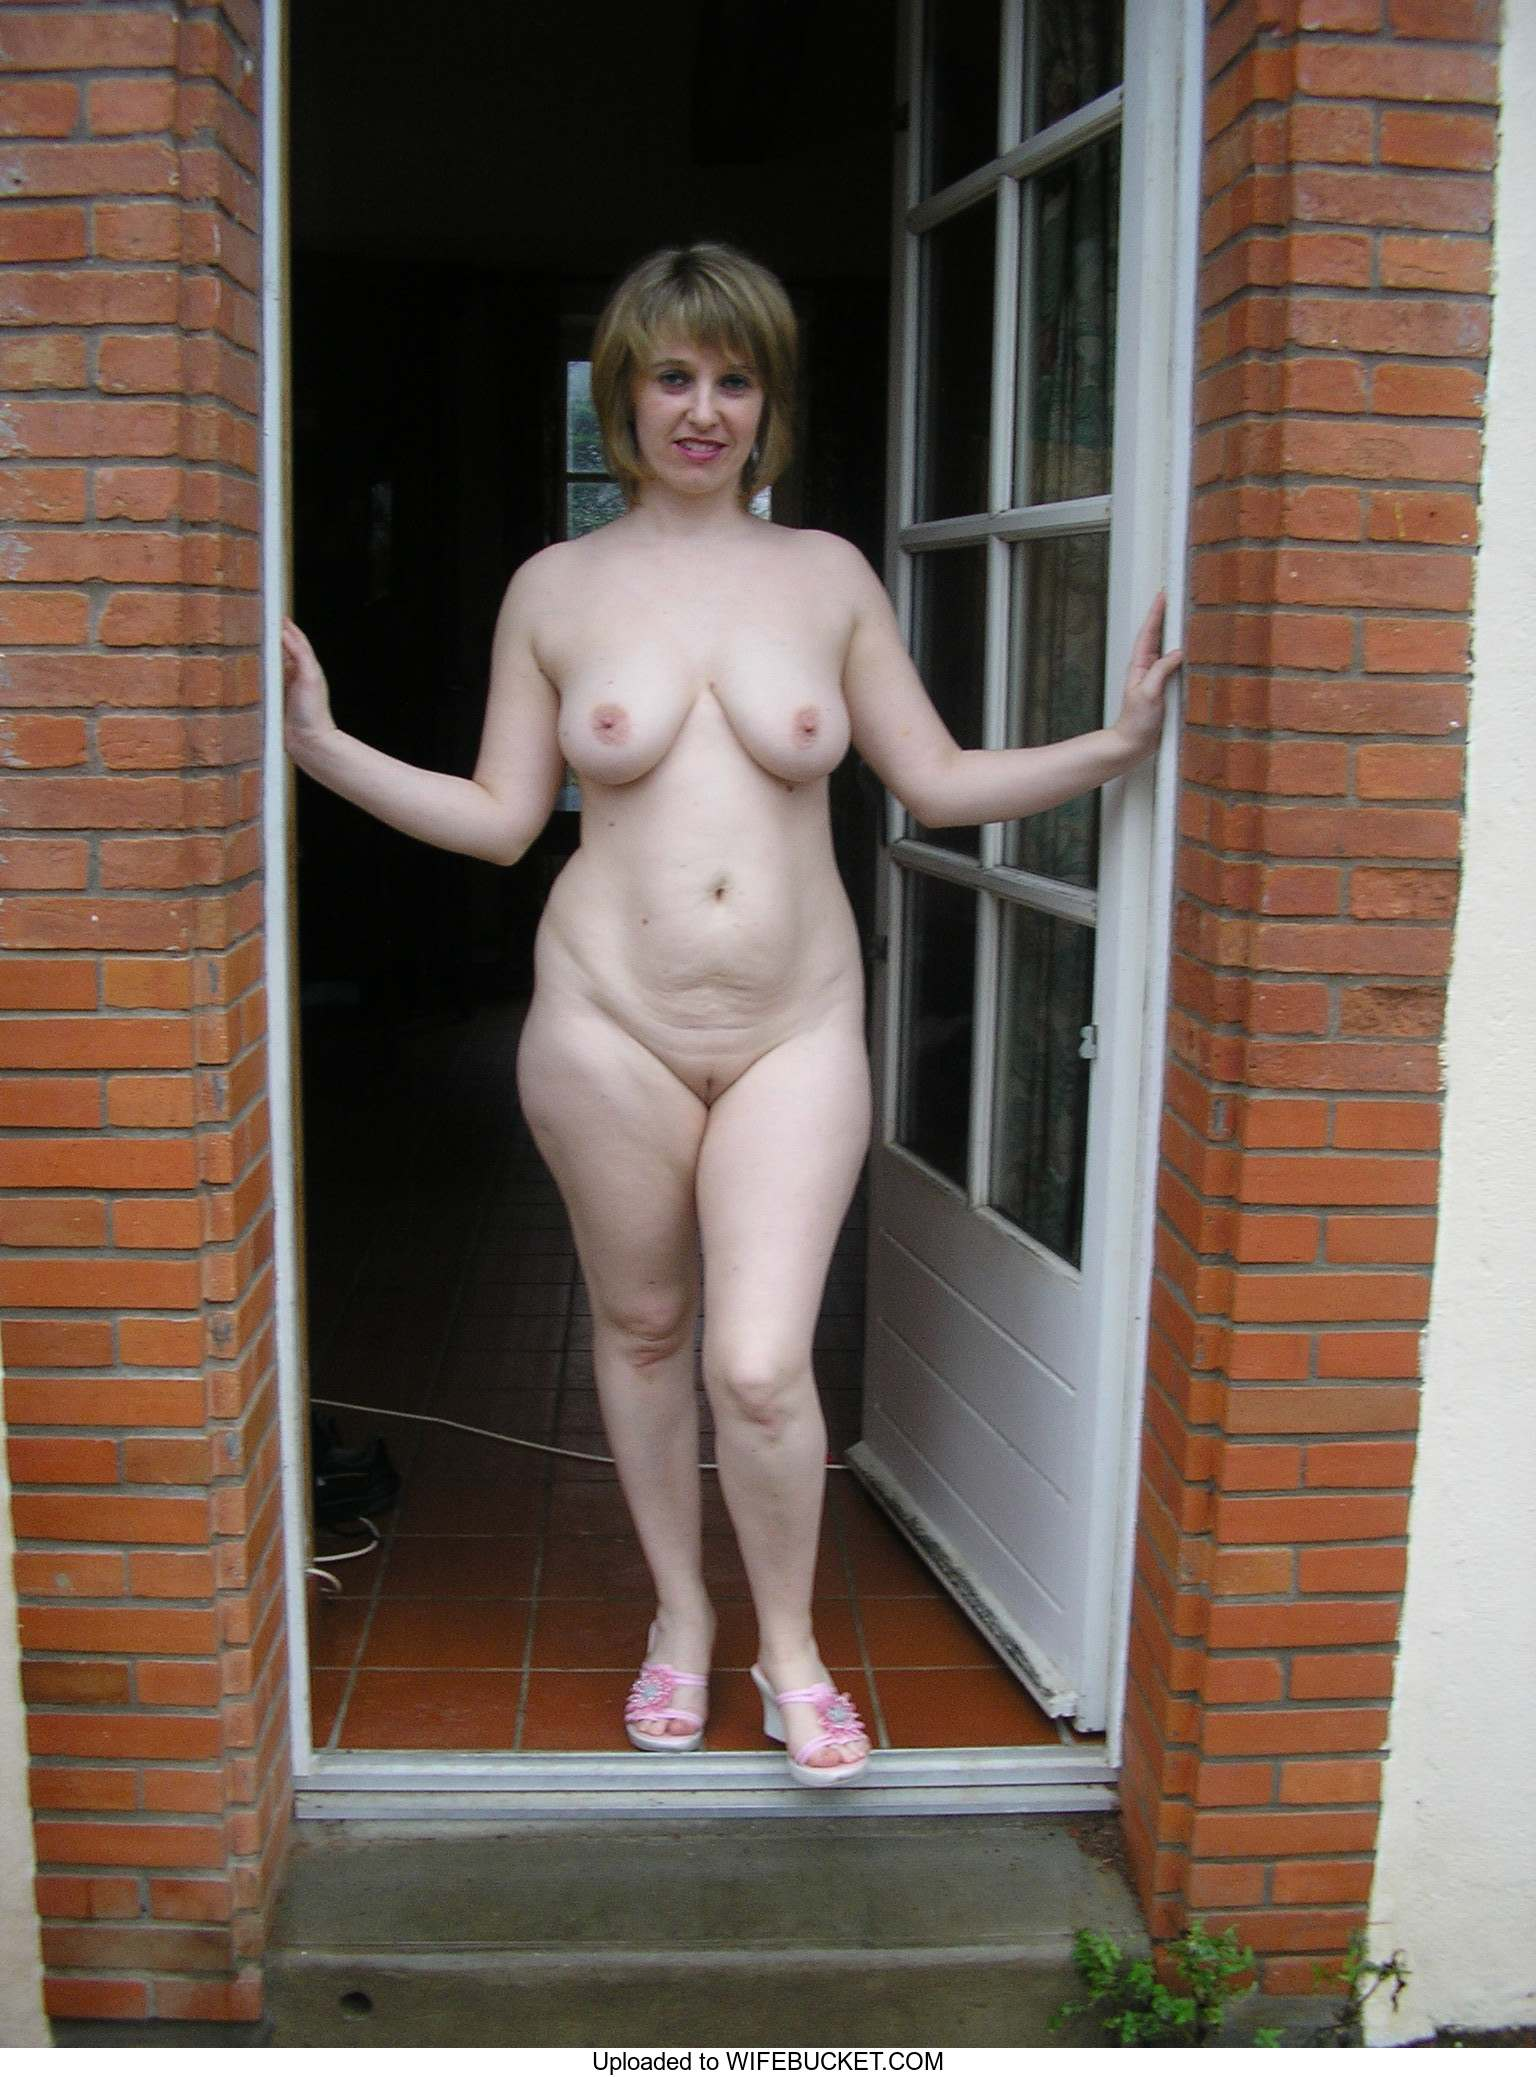 Nude Wives And Milfs Archives  Wifebucket  Offical Milf Blog-4228